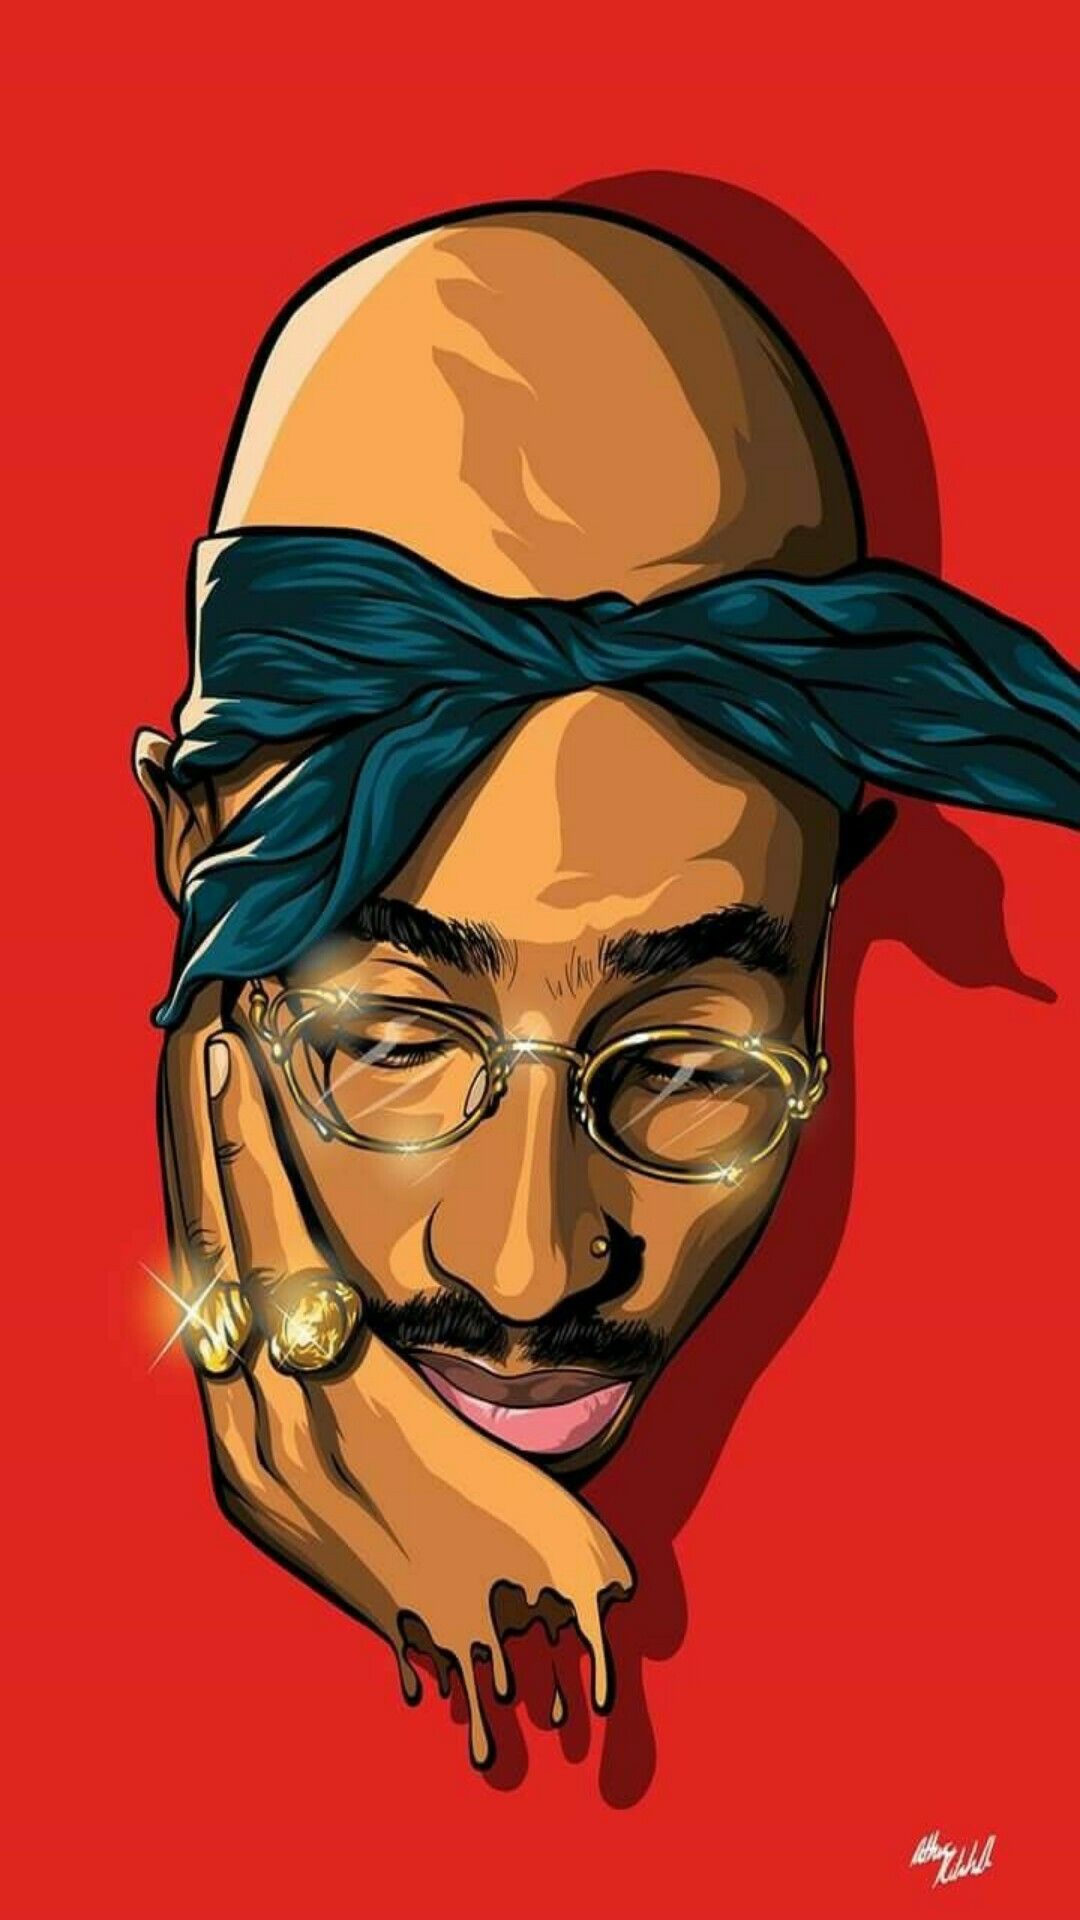 Pin By Hendie Purwiliarto On Phone Backgrounds Hipster 10 Tupac Art Black Art Pictures Hip Hop Art